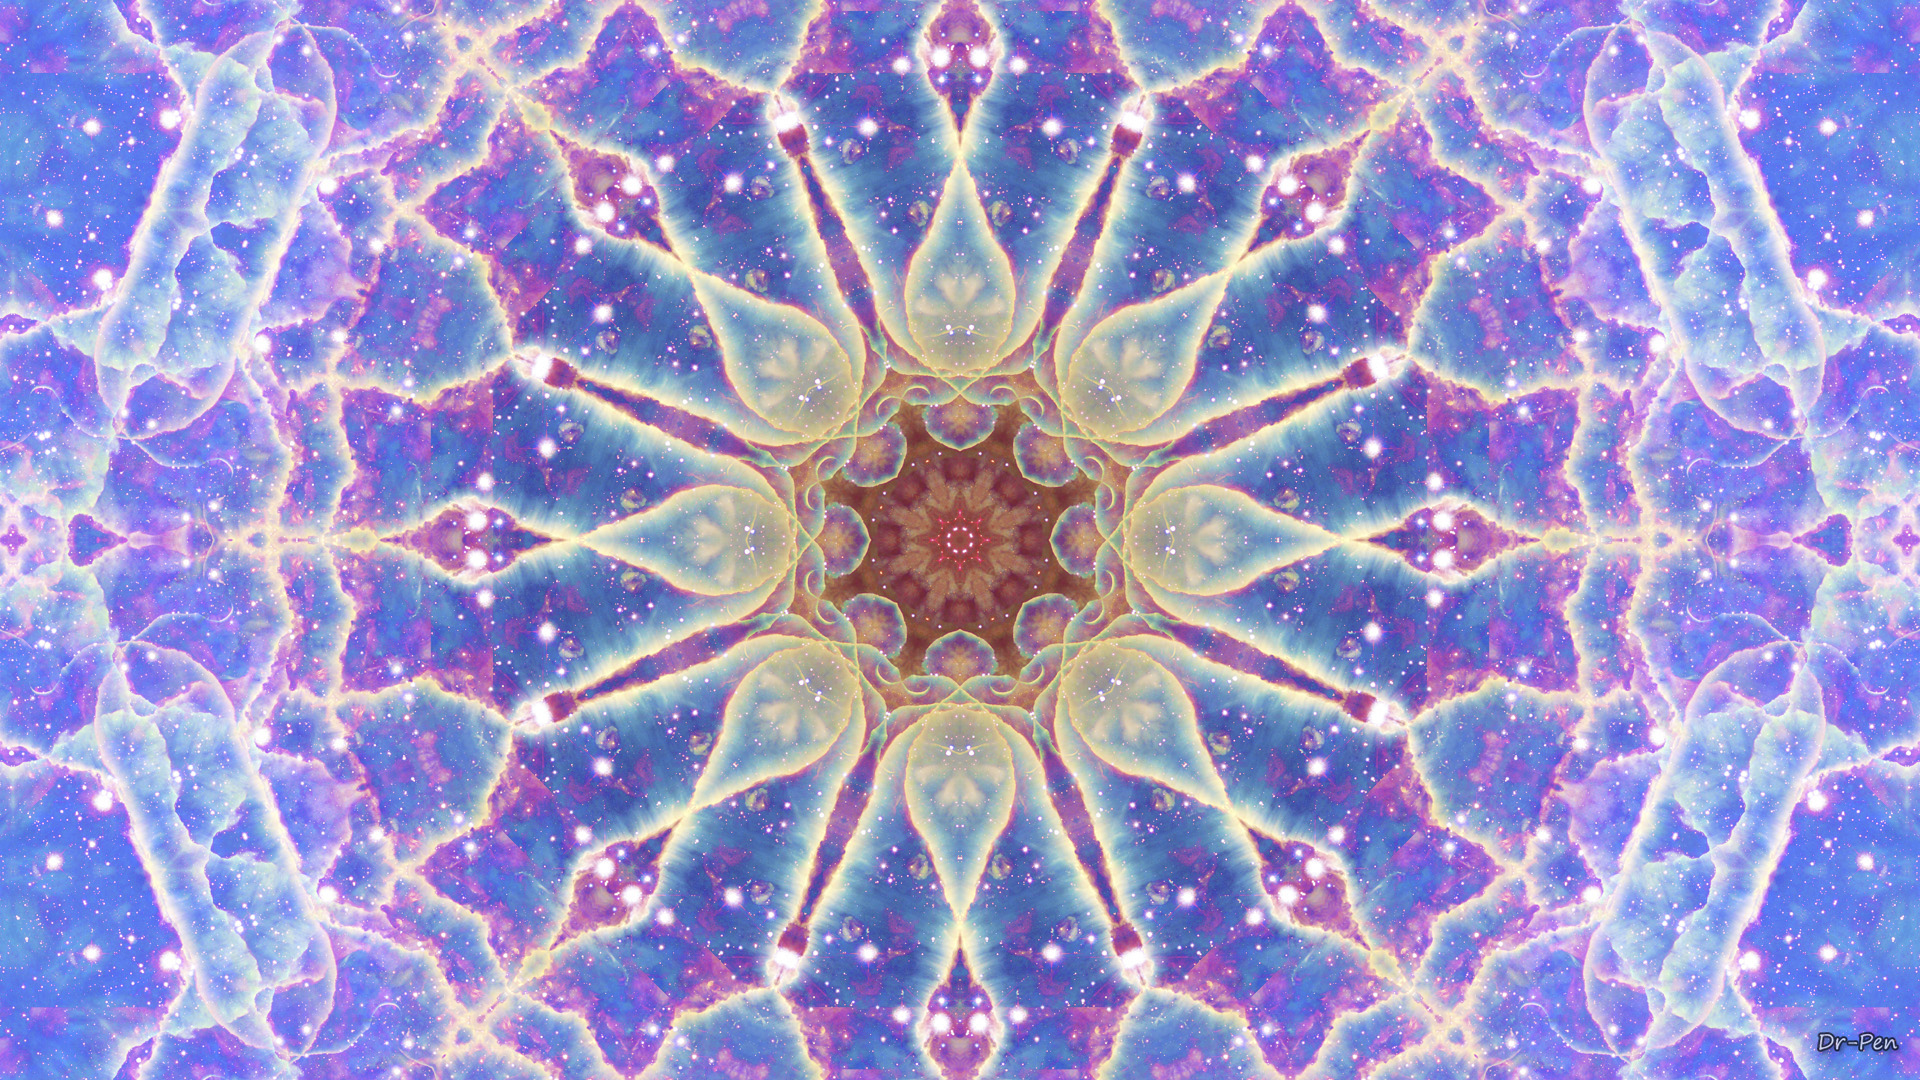 Artistic Manipulation Digital Art Abstract Mandala Space Blue Star Pattern Purple 1920x1080